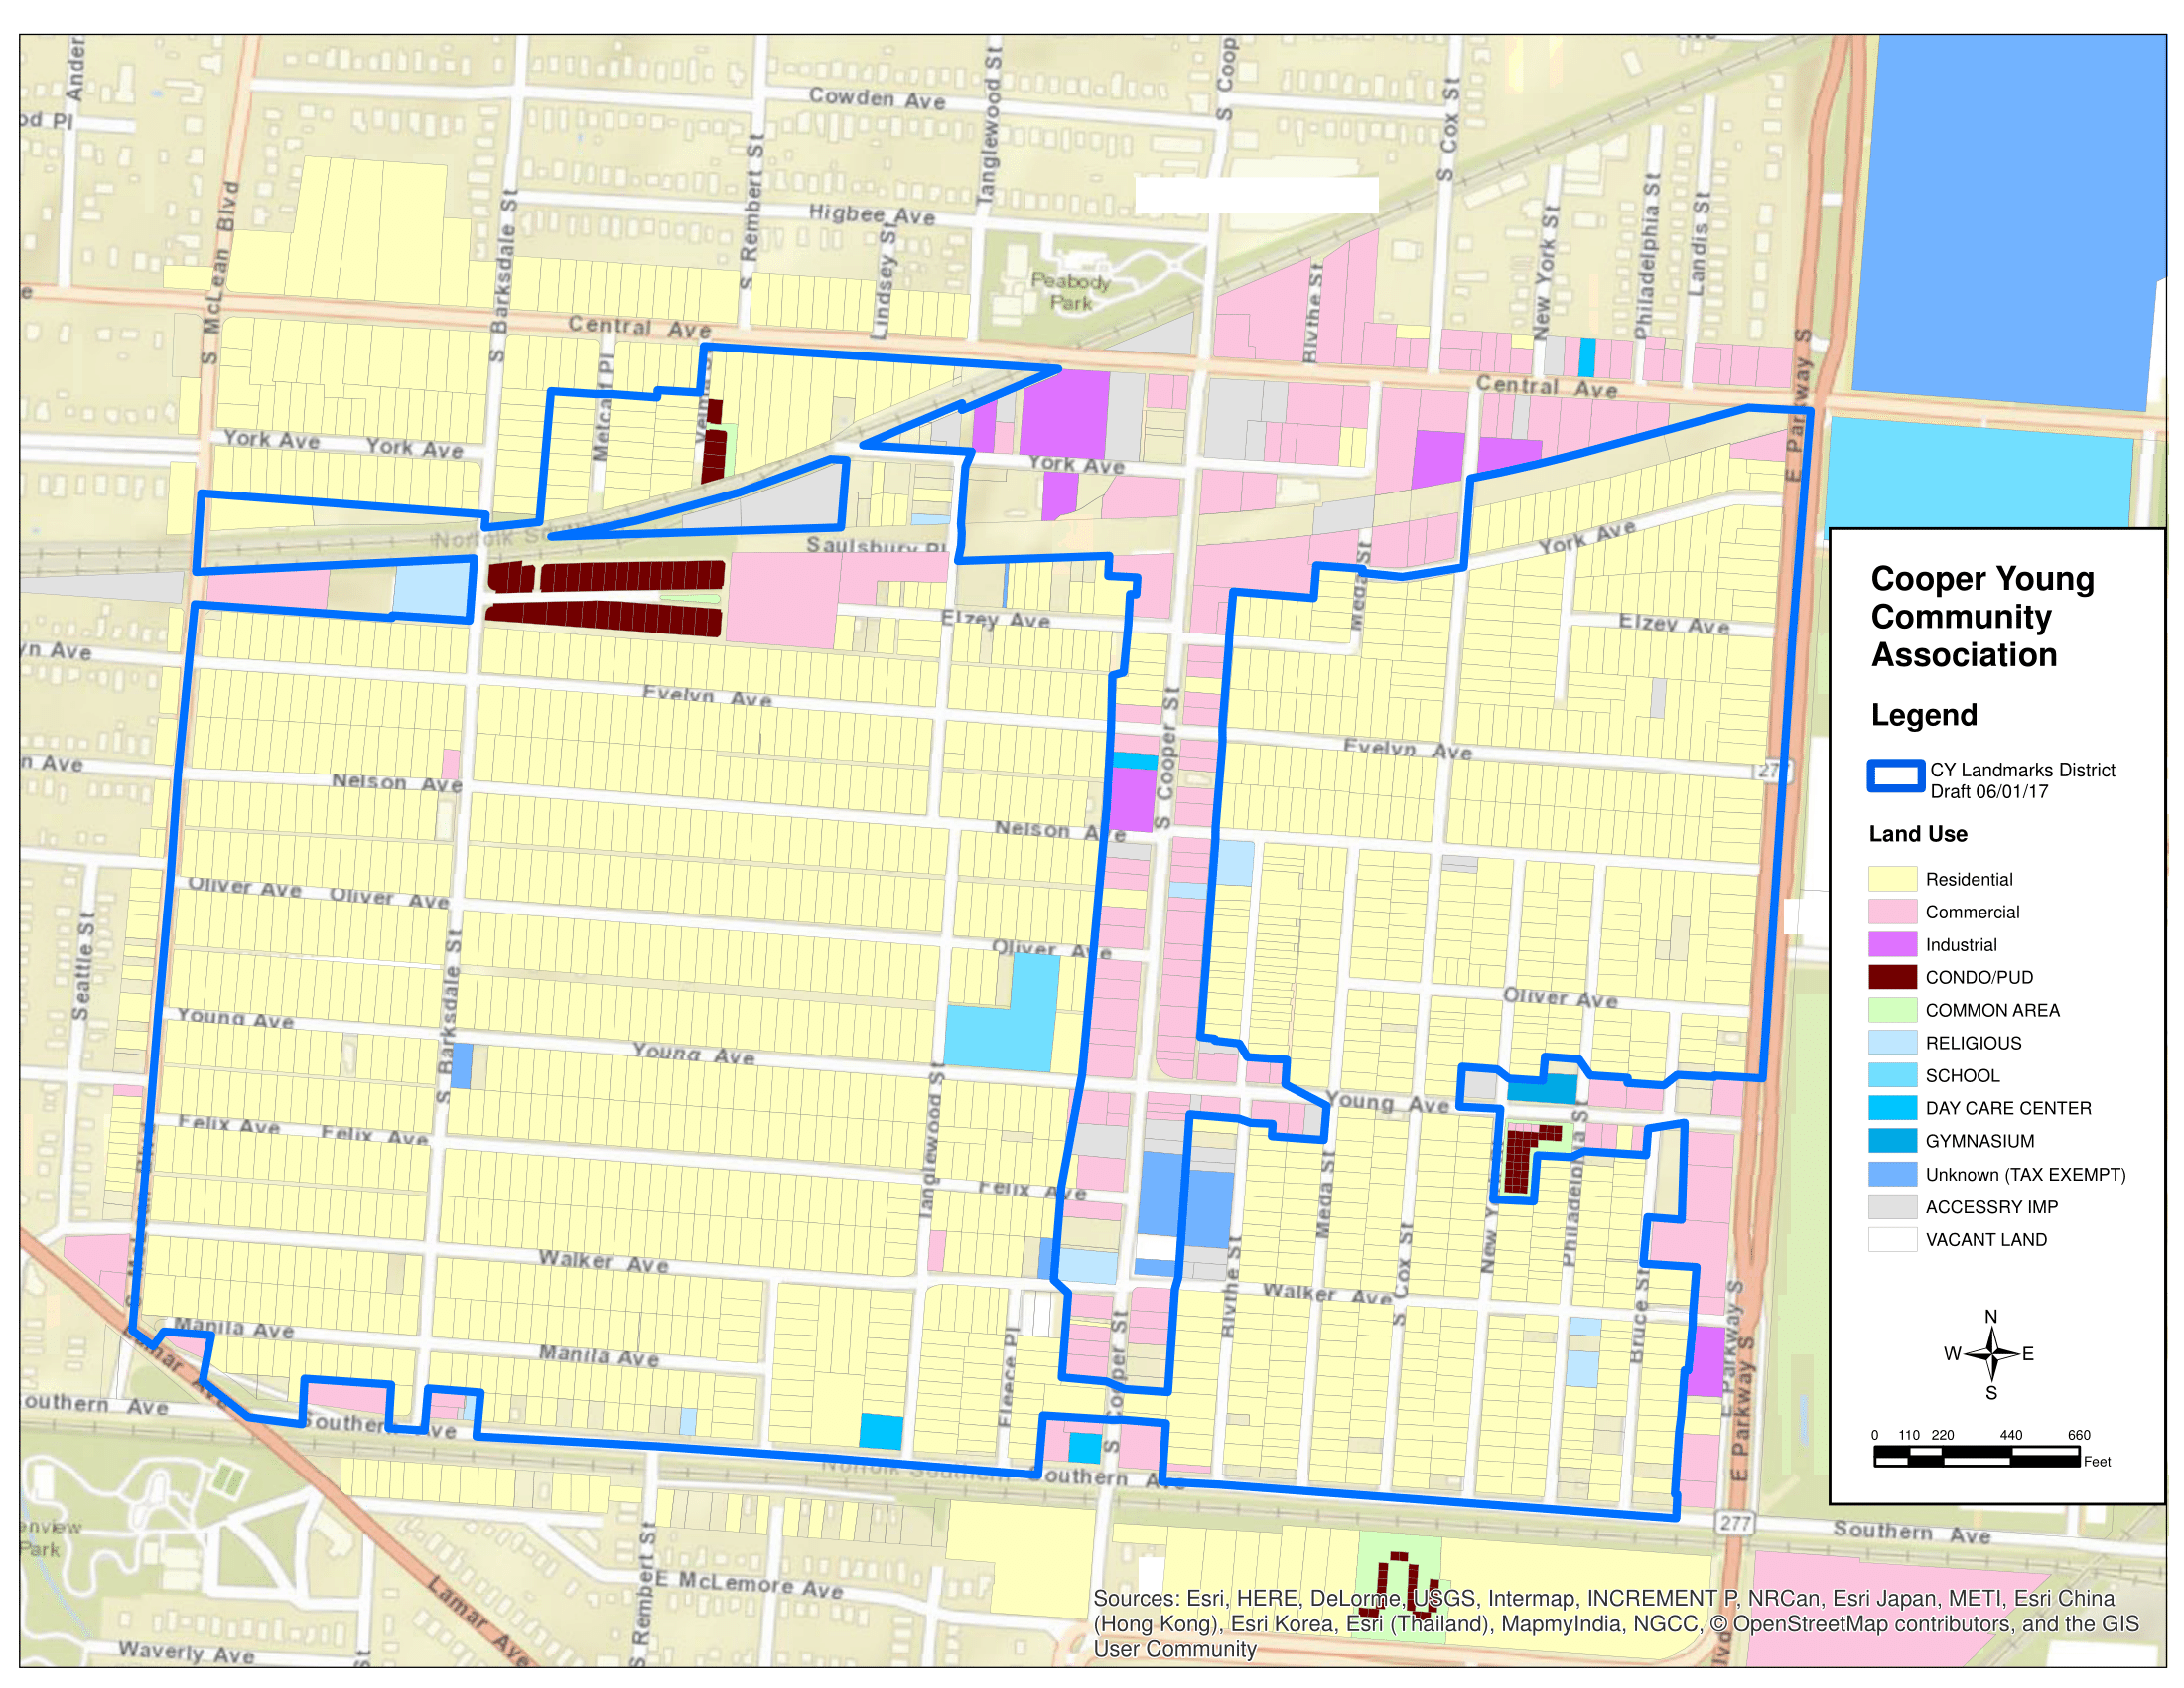 Boundaries for the proposed CY Landmarks District focus on residential properties.